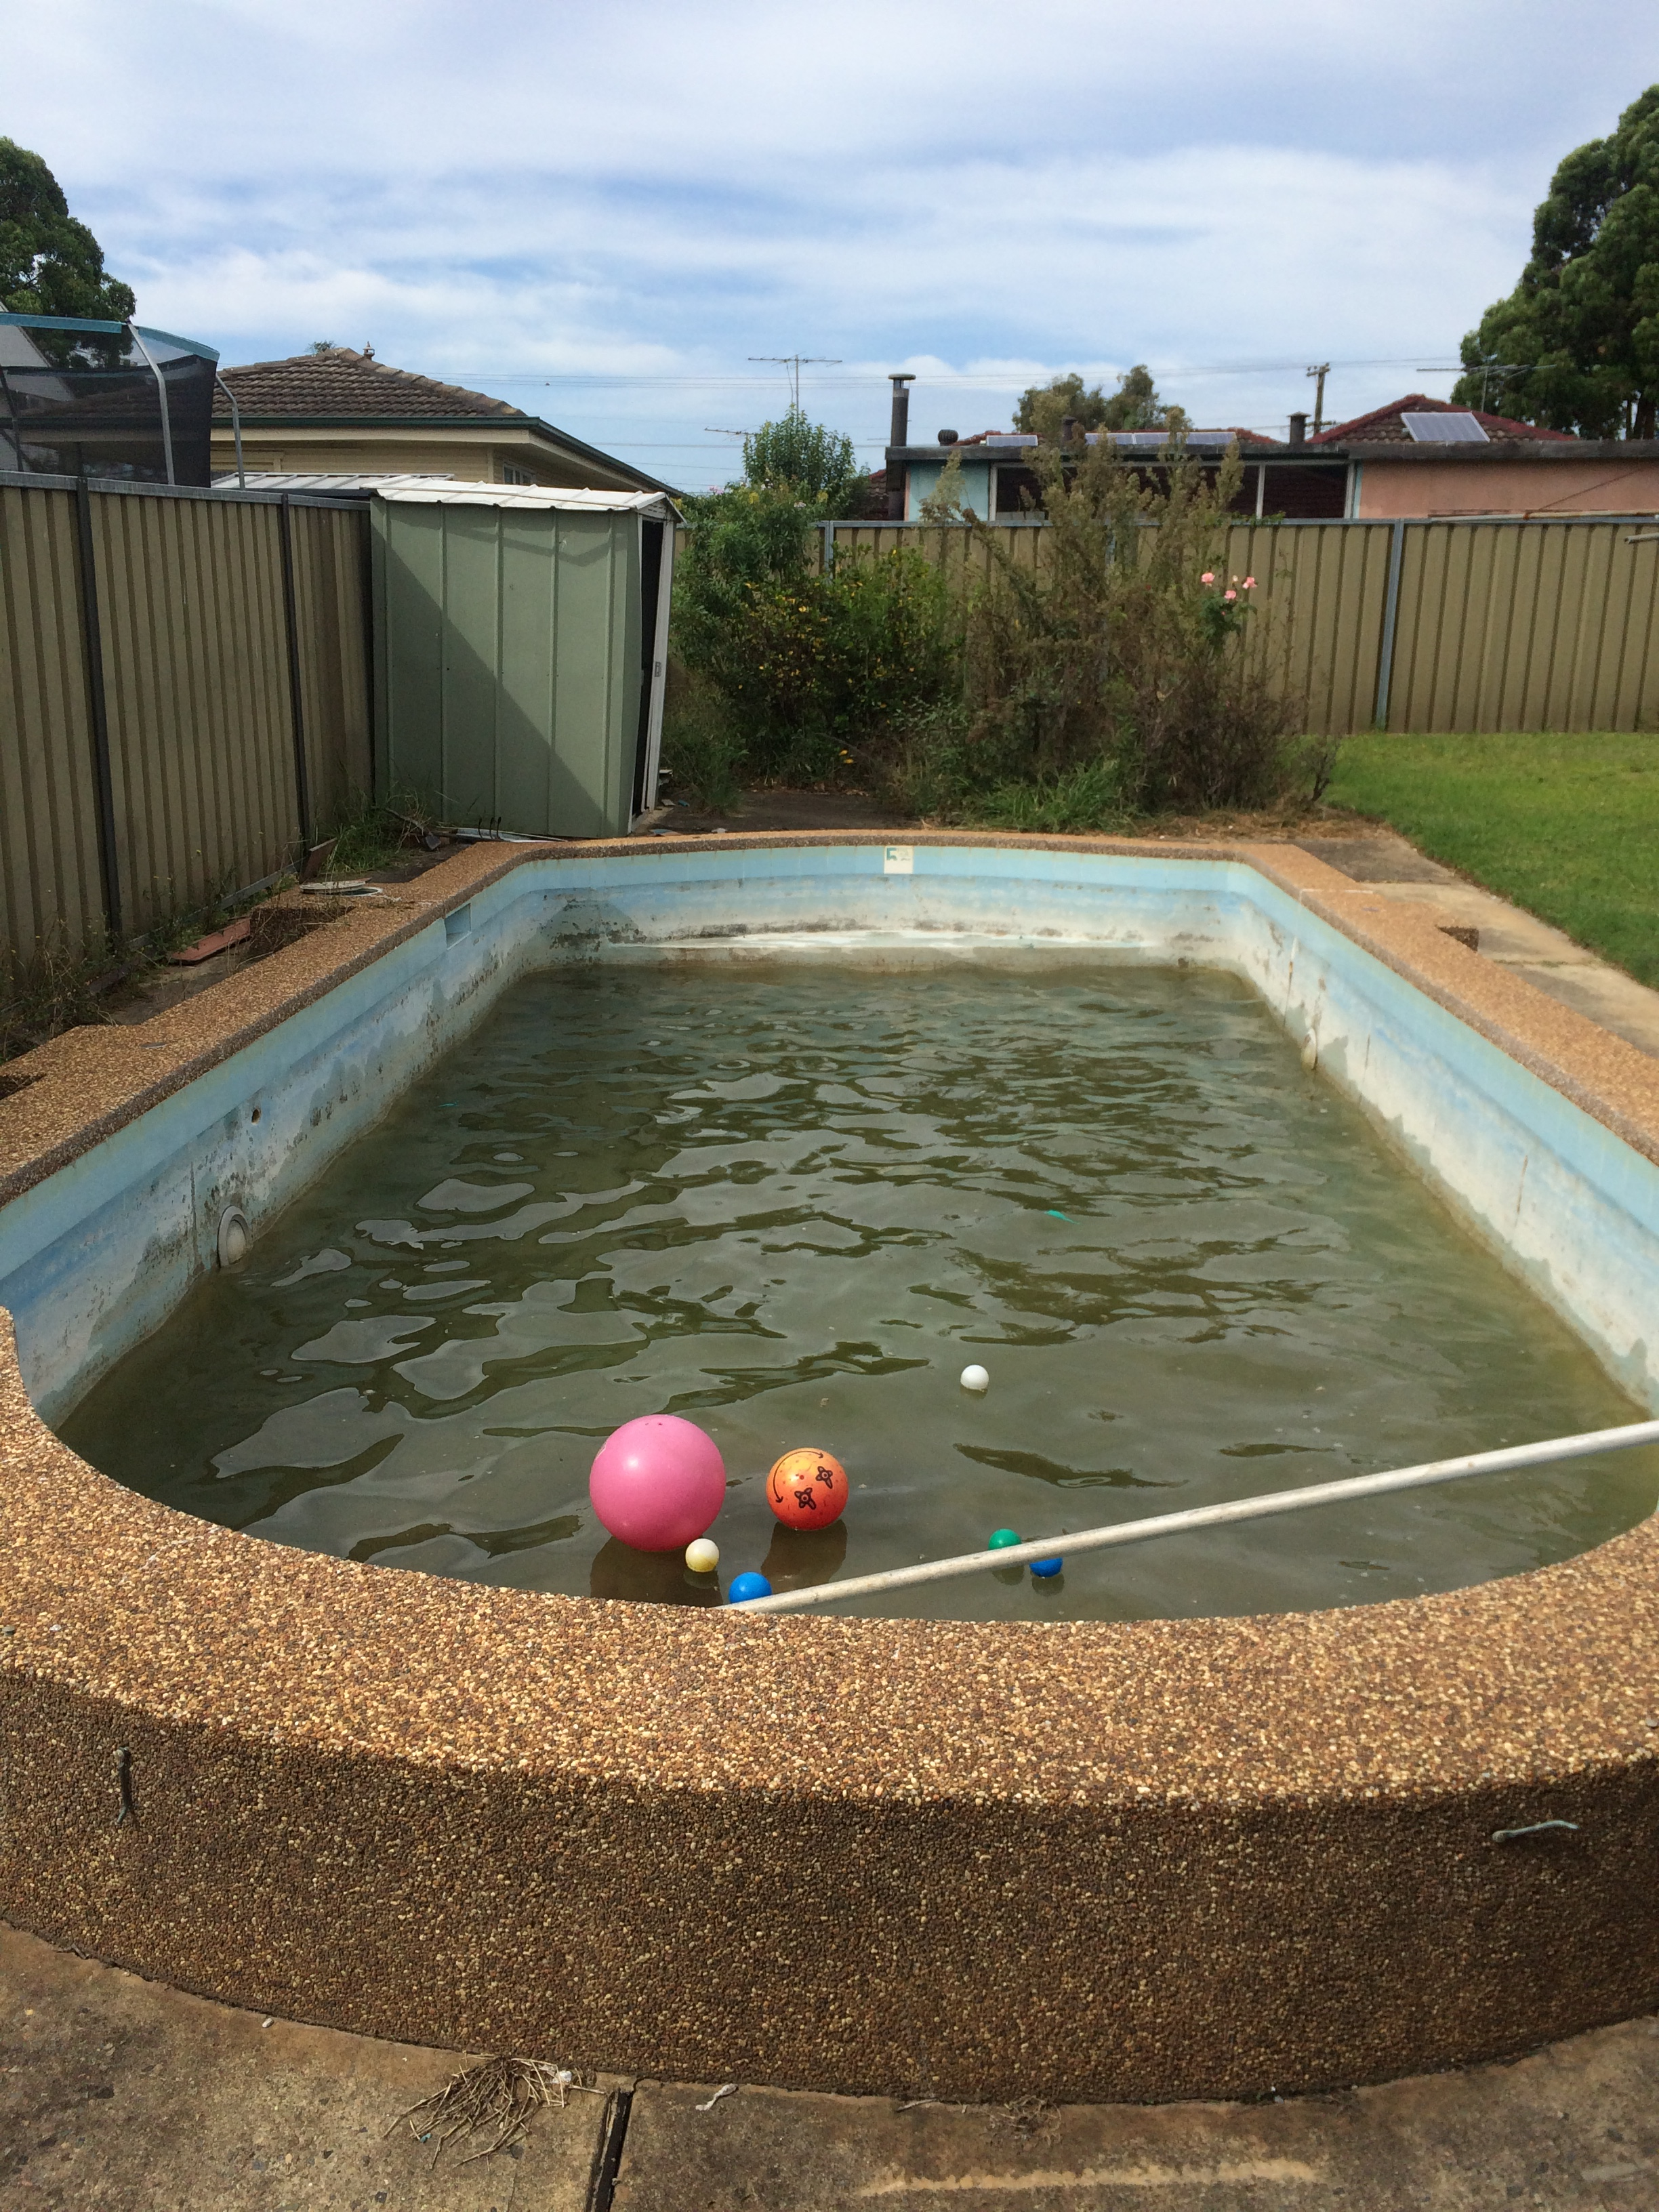 how to clean a neglected green swimming pool clean pools r us. Black Bedroom Furniture Sets. Home Design Ideas